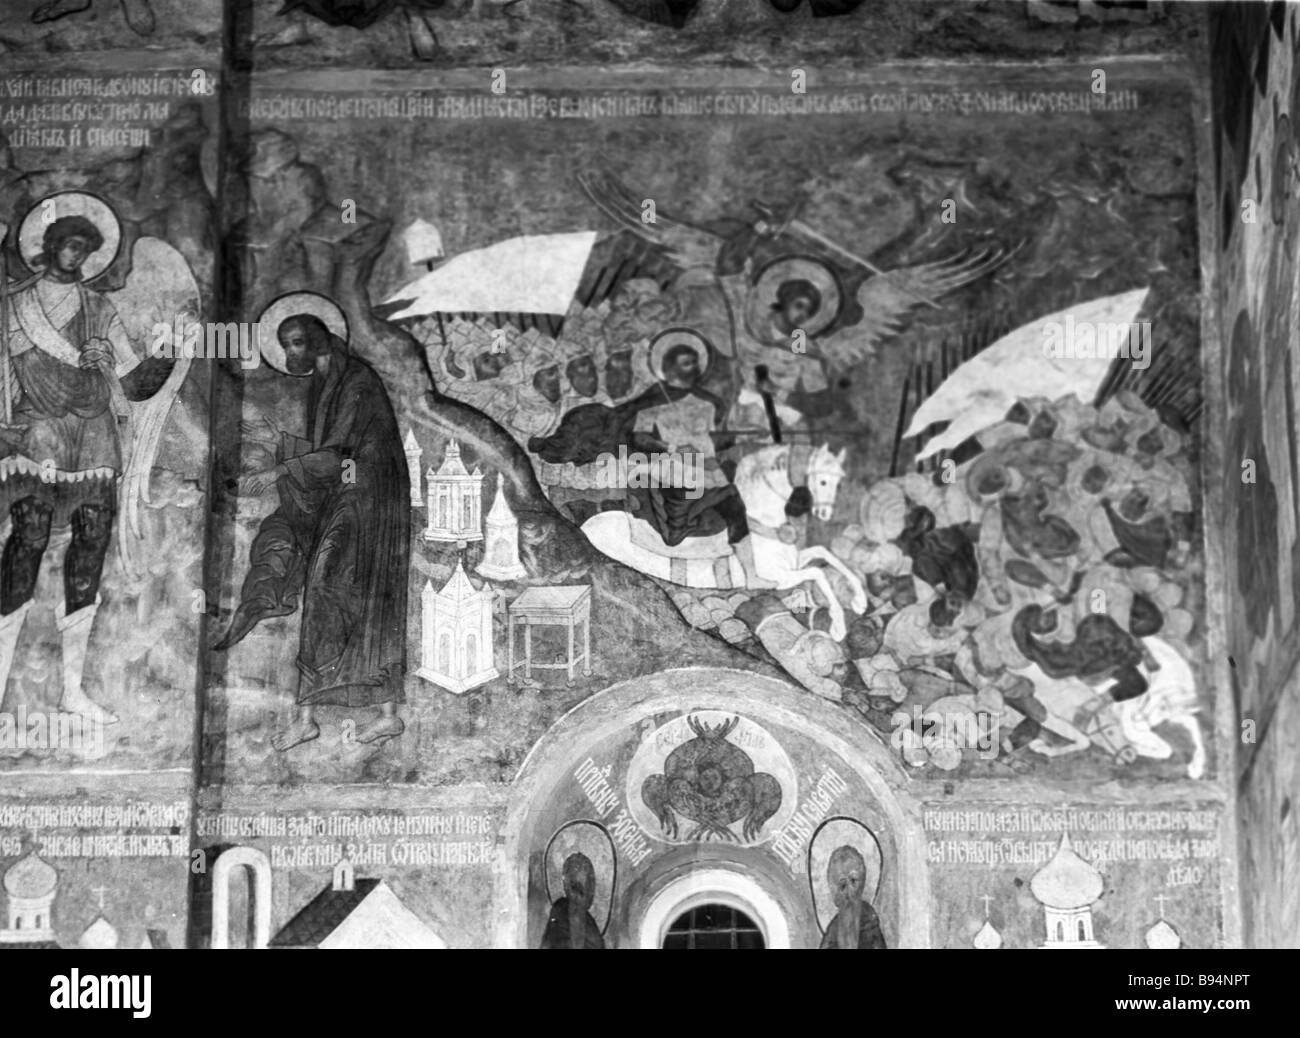 Fresco Gideon Routing the Midians from the St Archangel Cathedral of the Moscow Kremlin 17th century - Stock Image